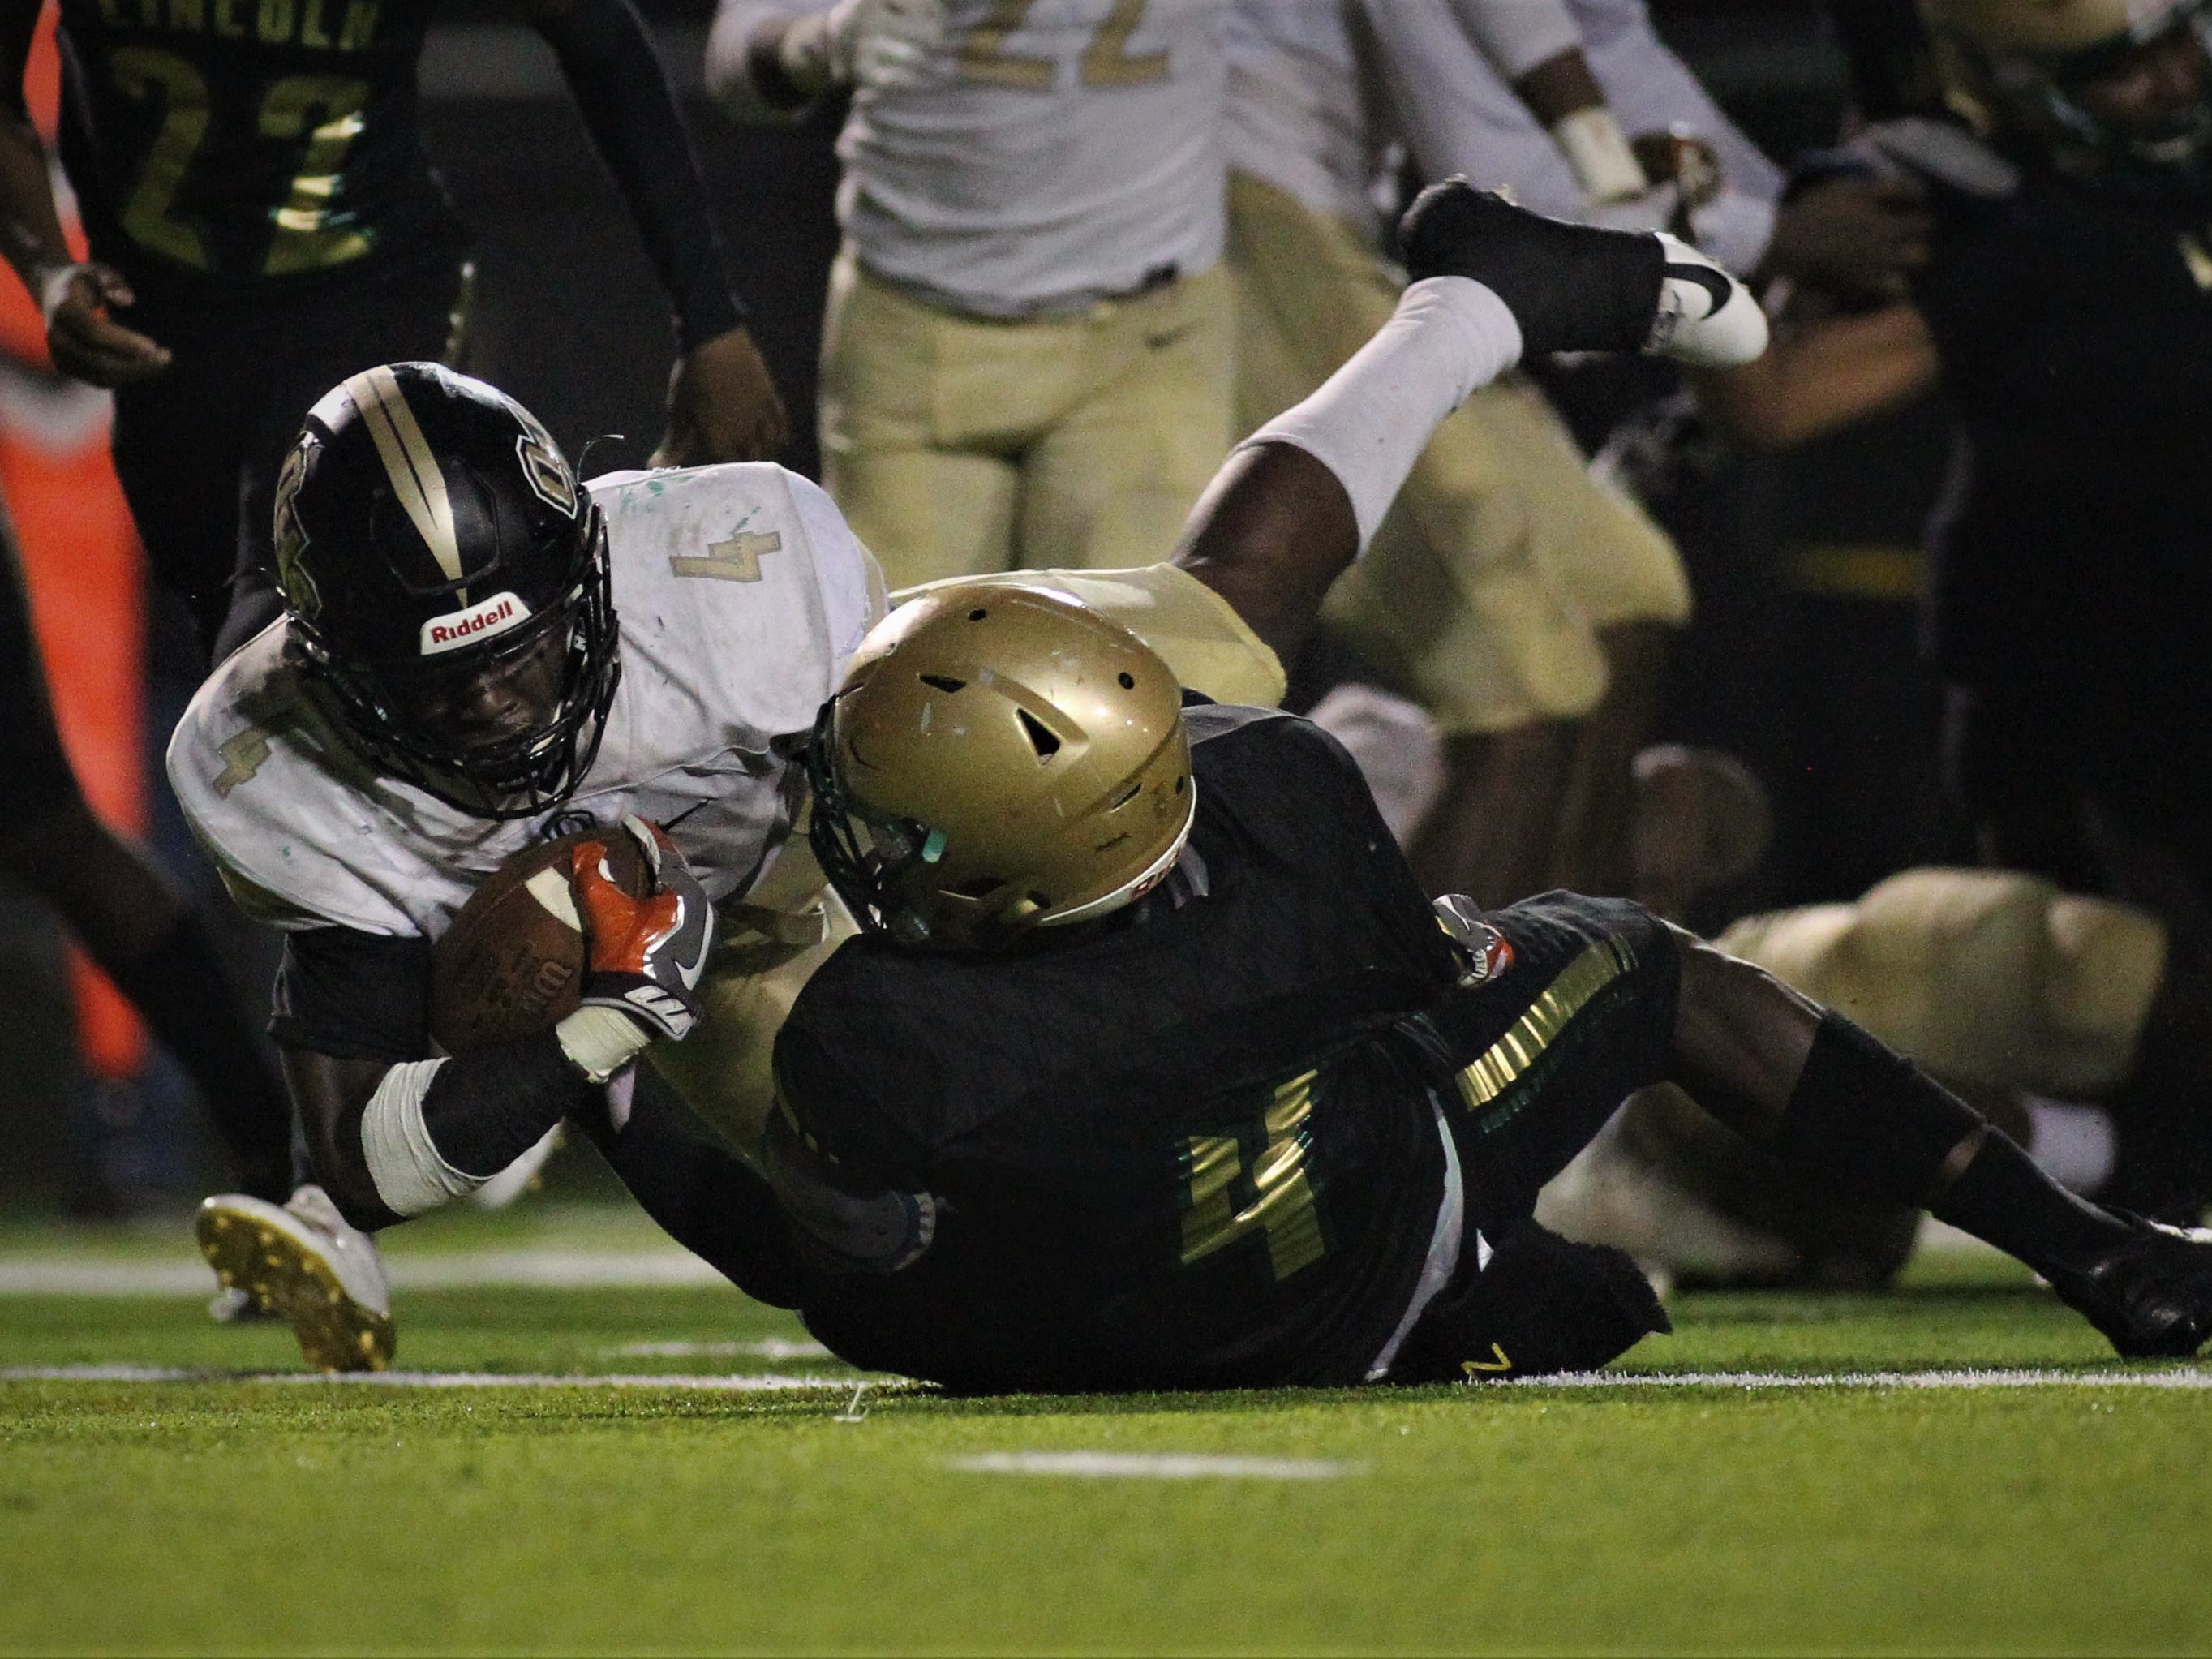 Oakleaf running back Keshawn King powers through Lincoln safety Jalen Glaze for a one-yard touchdown, but Lincoln beat Oakleaf 38-31 in three overtime periods during a Region 1-7A quarterfinal Thursday night at Gene Cox Stadium.